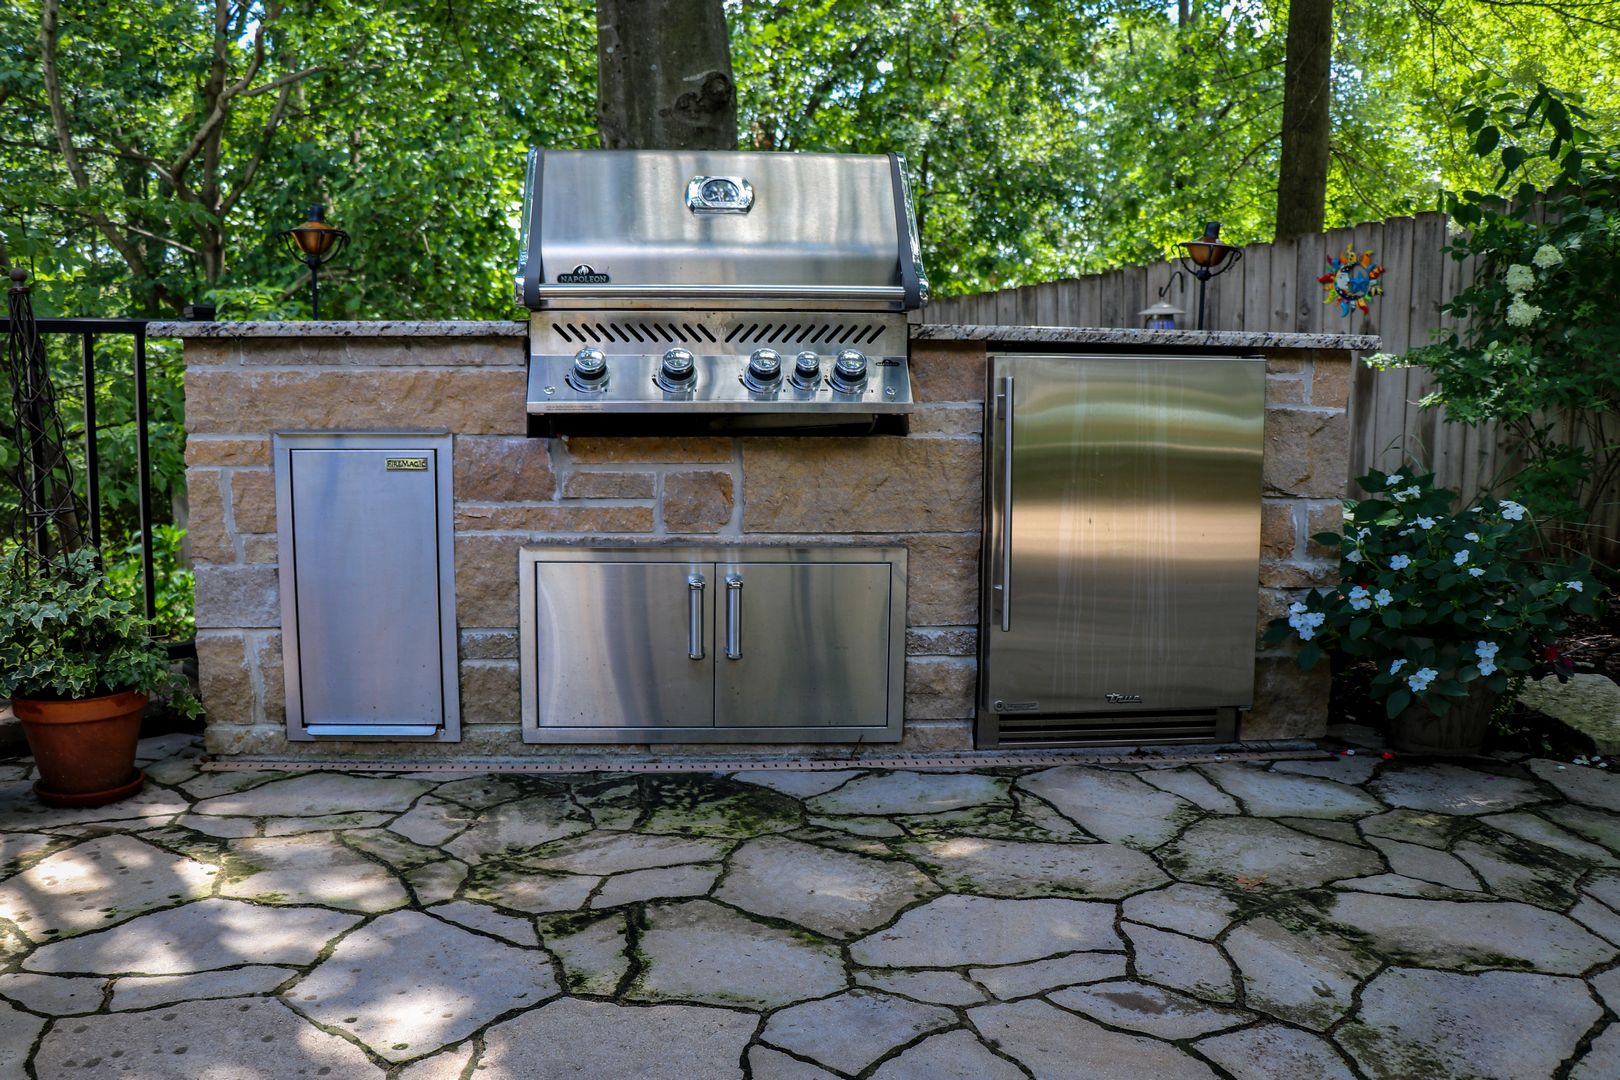 A grilling and beverage center located on a stone patio